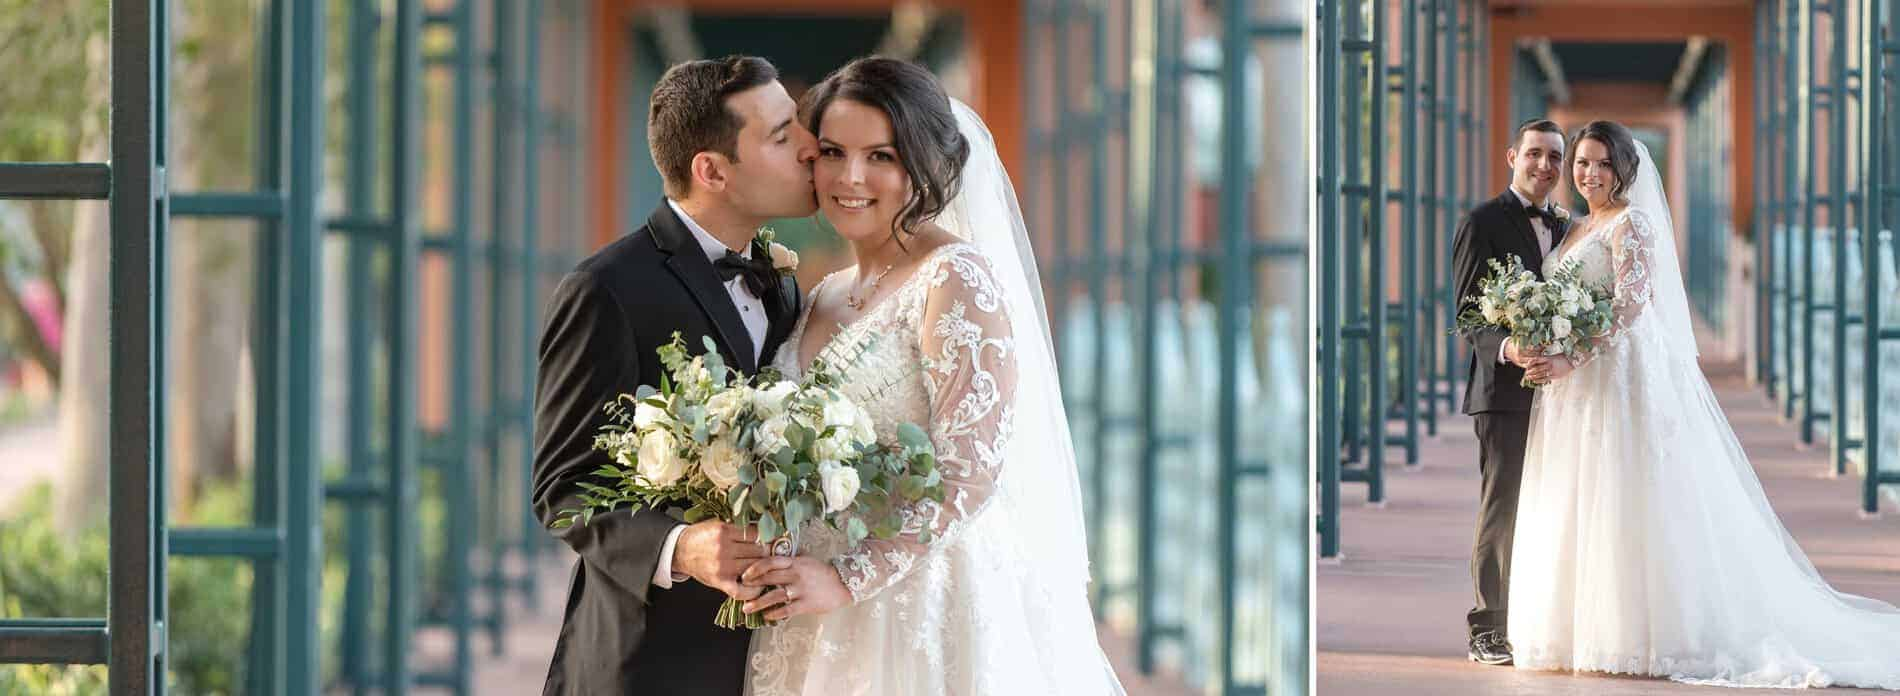 Bride and Groom Portraits at Disney Swan and Dolphin Resort